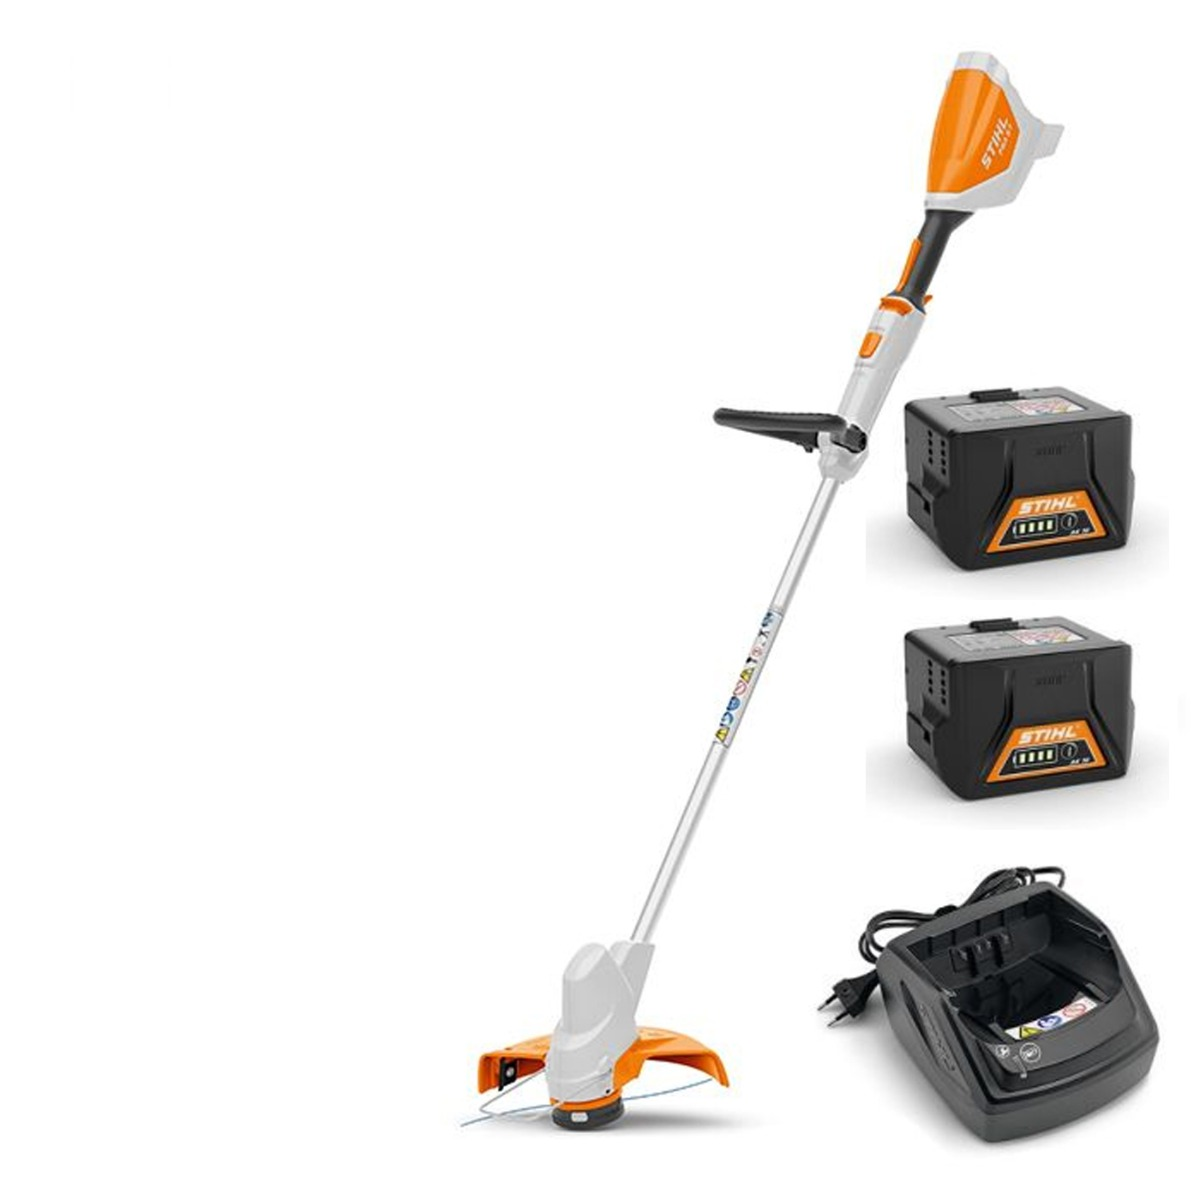 STIHL FSA 57 LINE TRIMMER